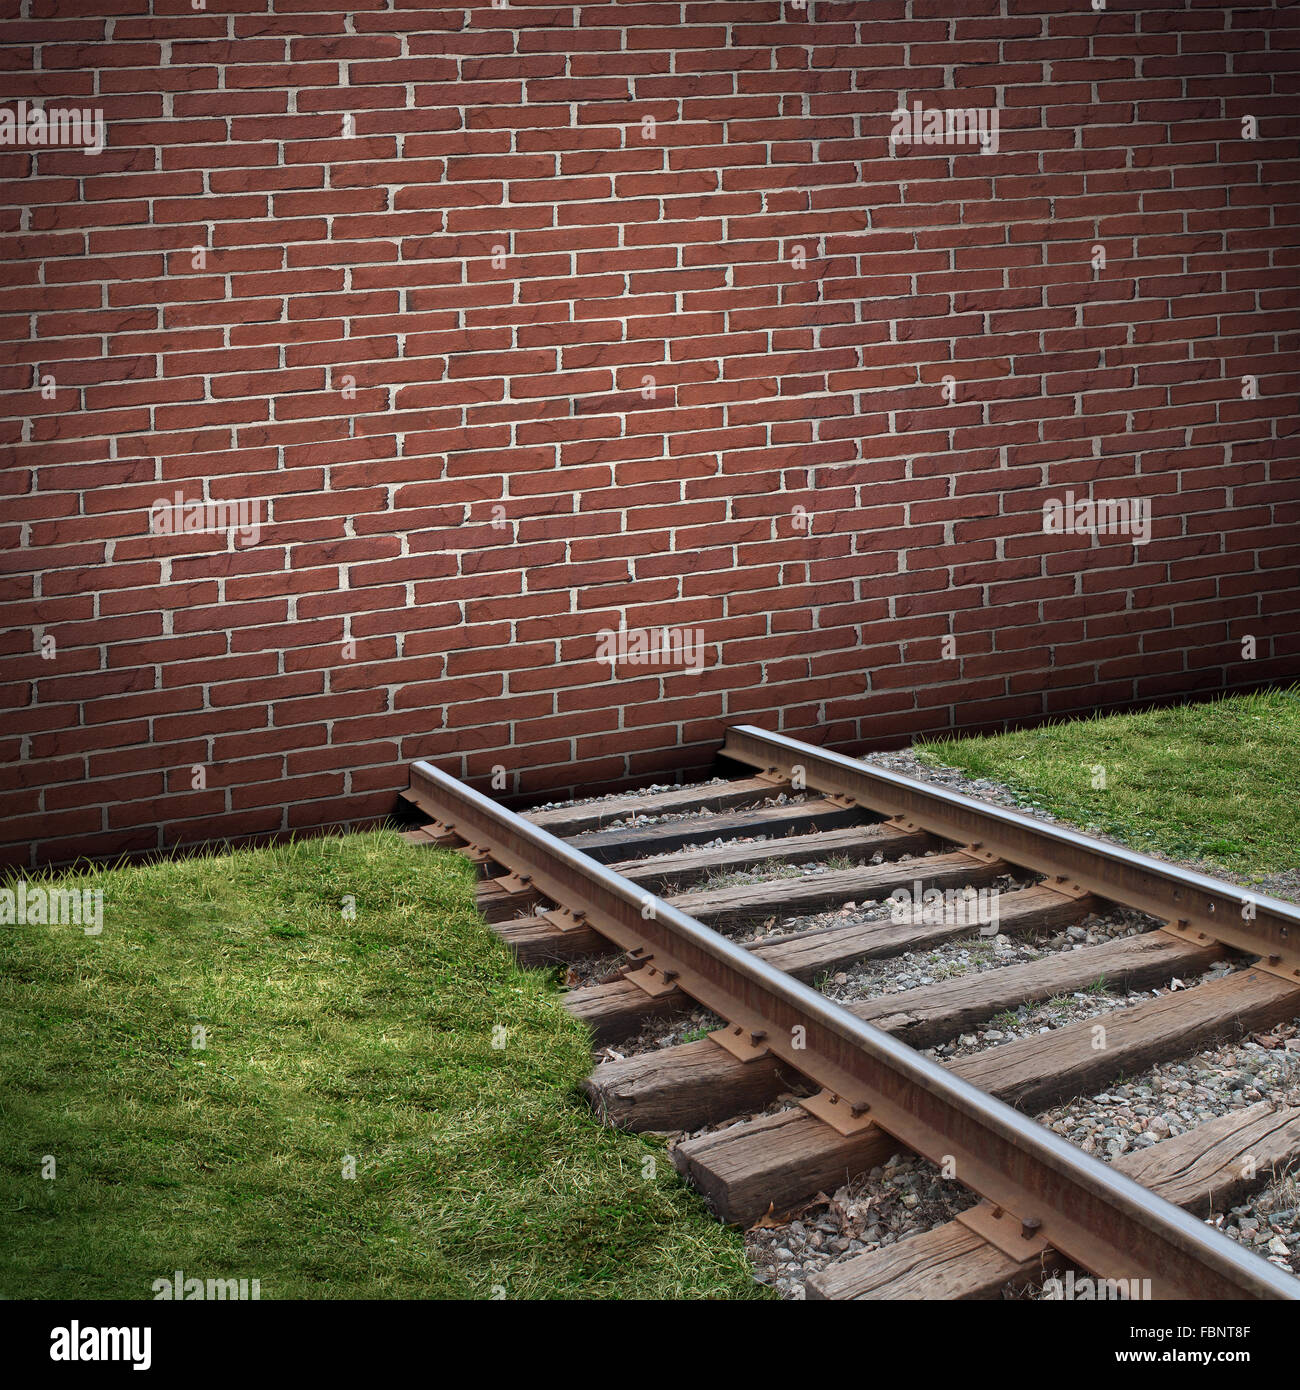 Road block or roadblock concept as a closed brick wall barricade blocking a train track as a business or life  closed - Stock Image